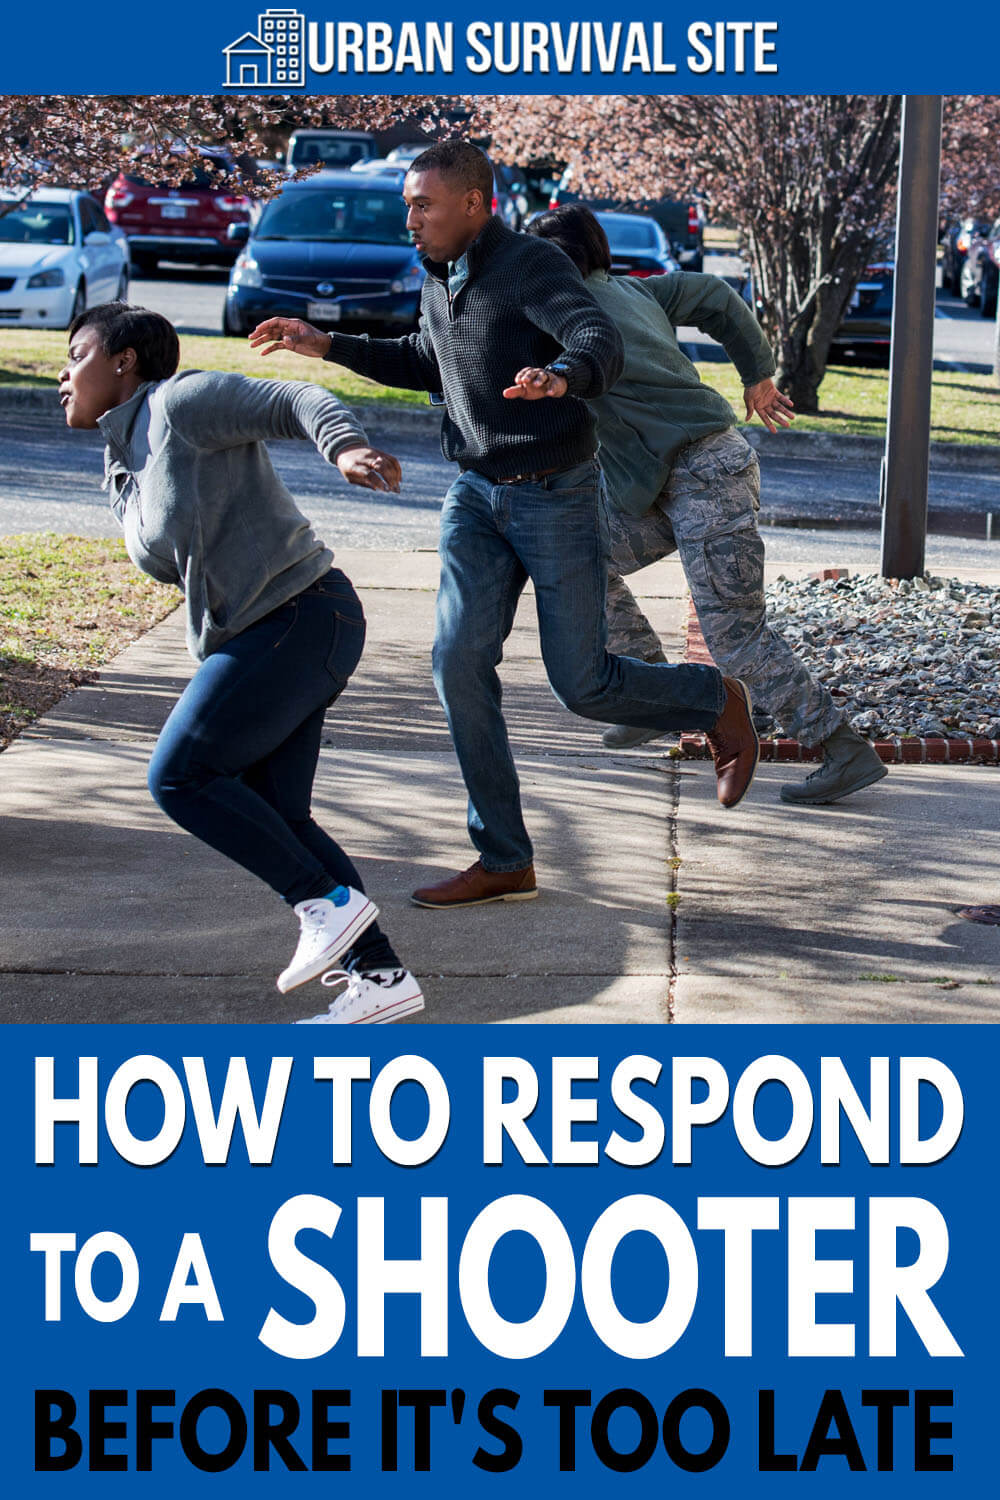 How to Respond to a Shooter Before It's Too Late